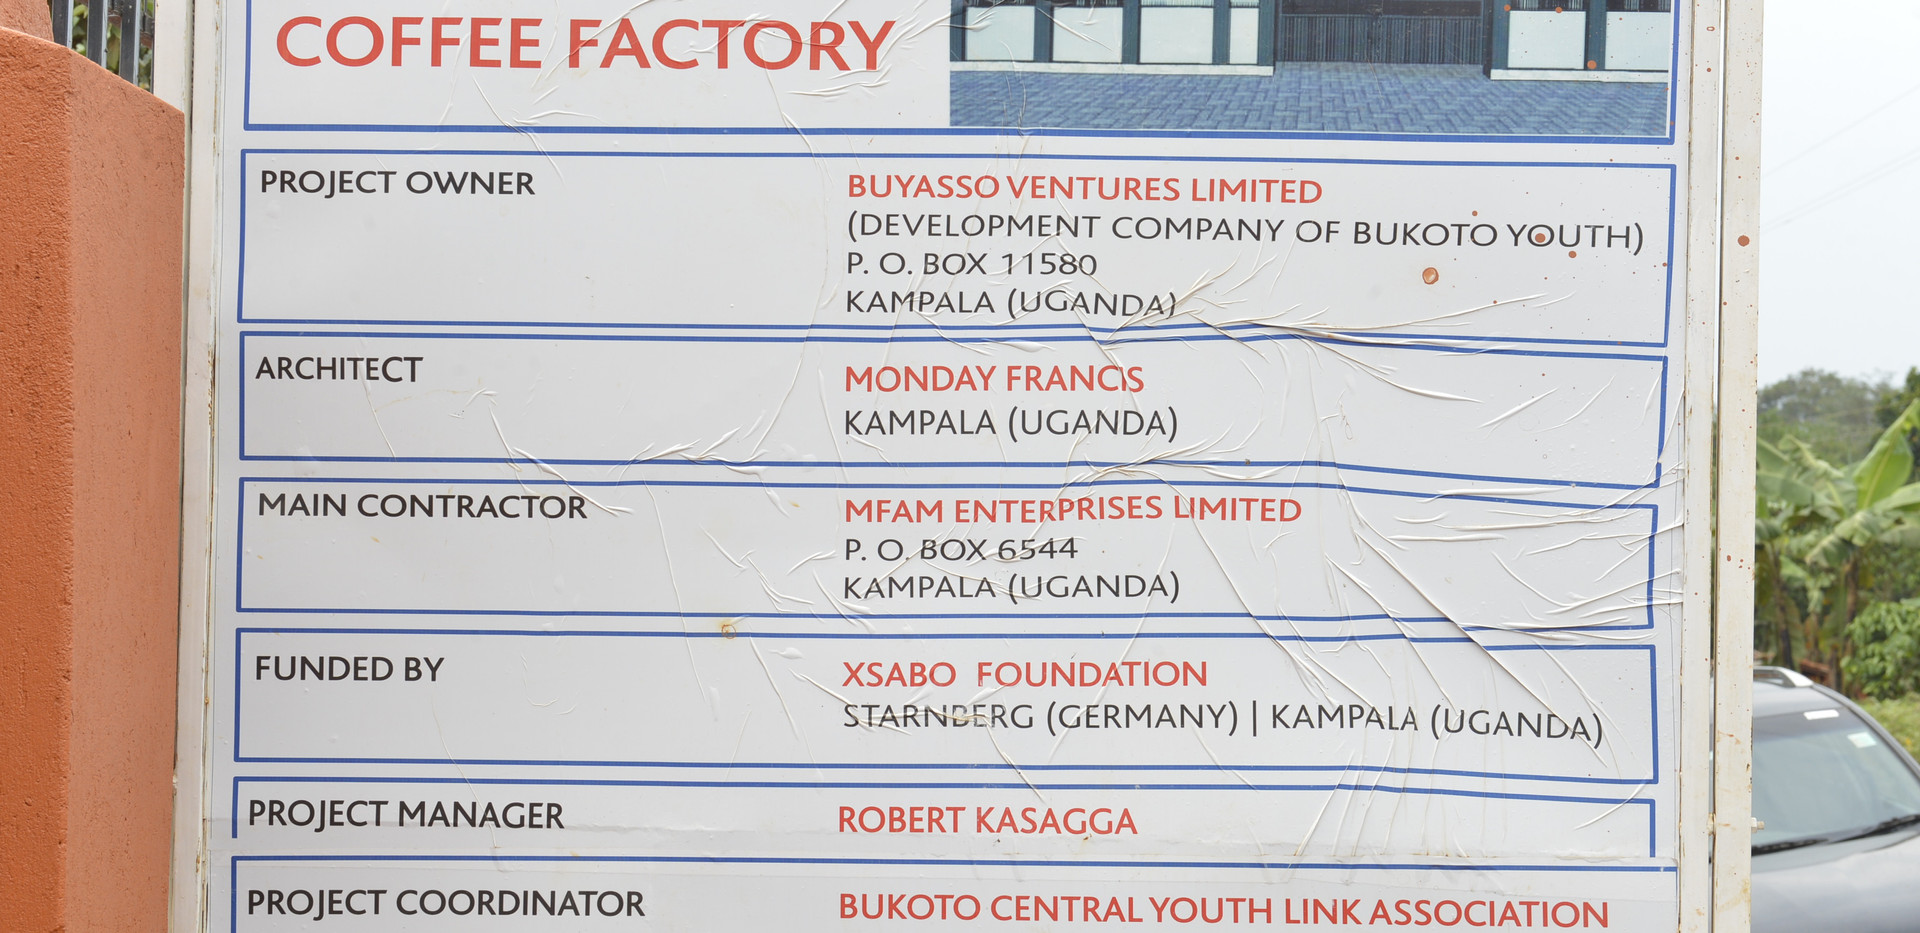 Billboard for the coffee factory for the youth that was sponsored by The Xsabo Foundation.